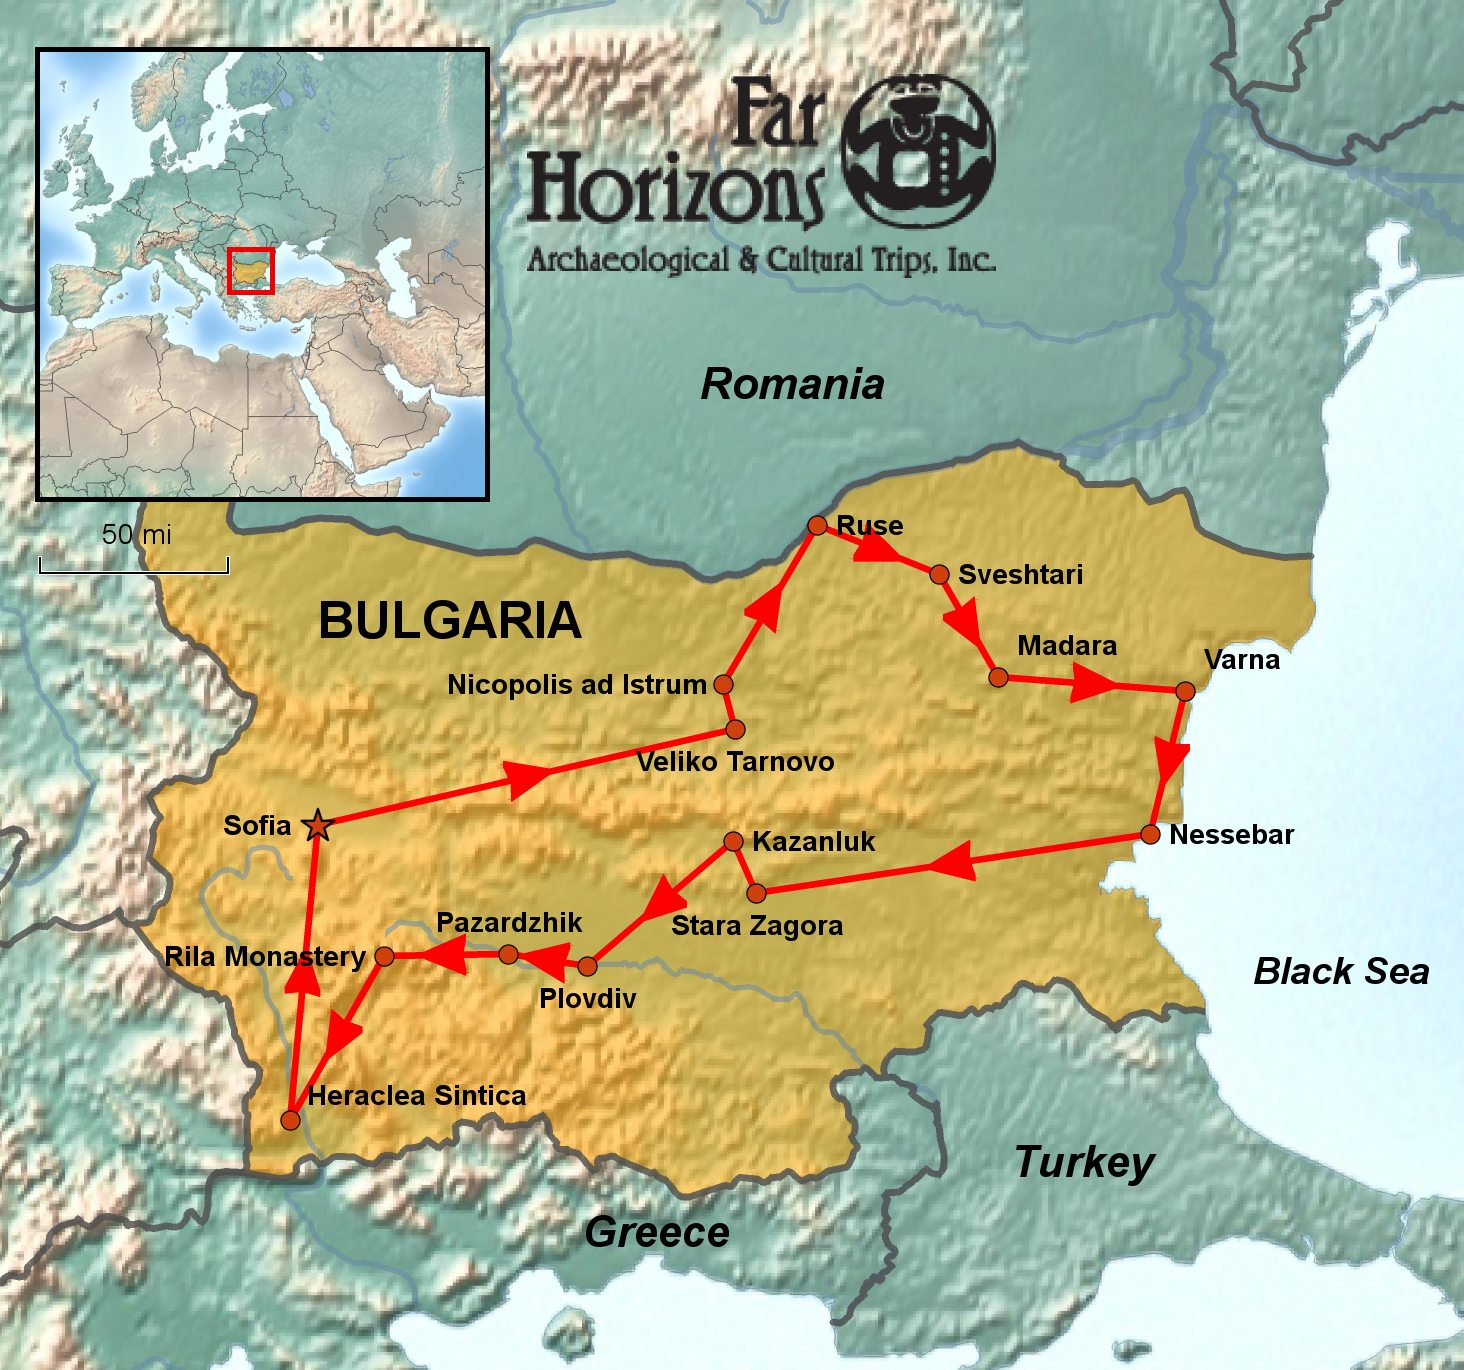 Bulgaria Tour - Land of History